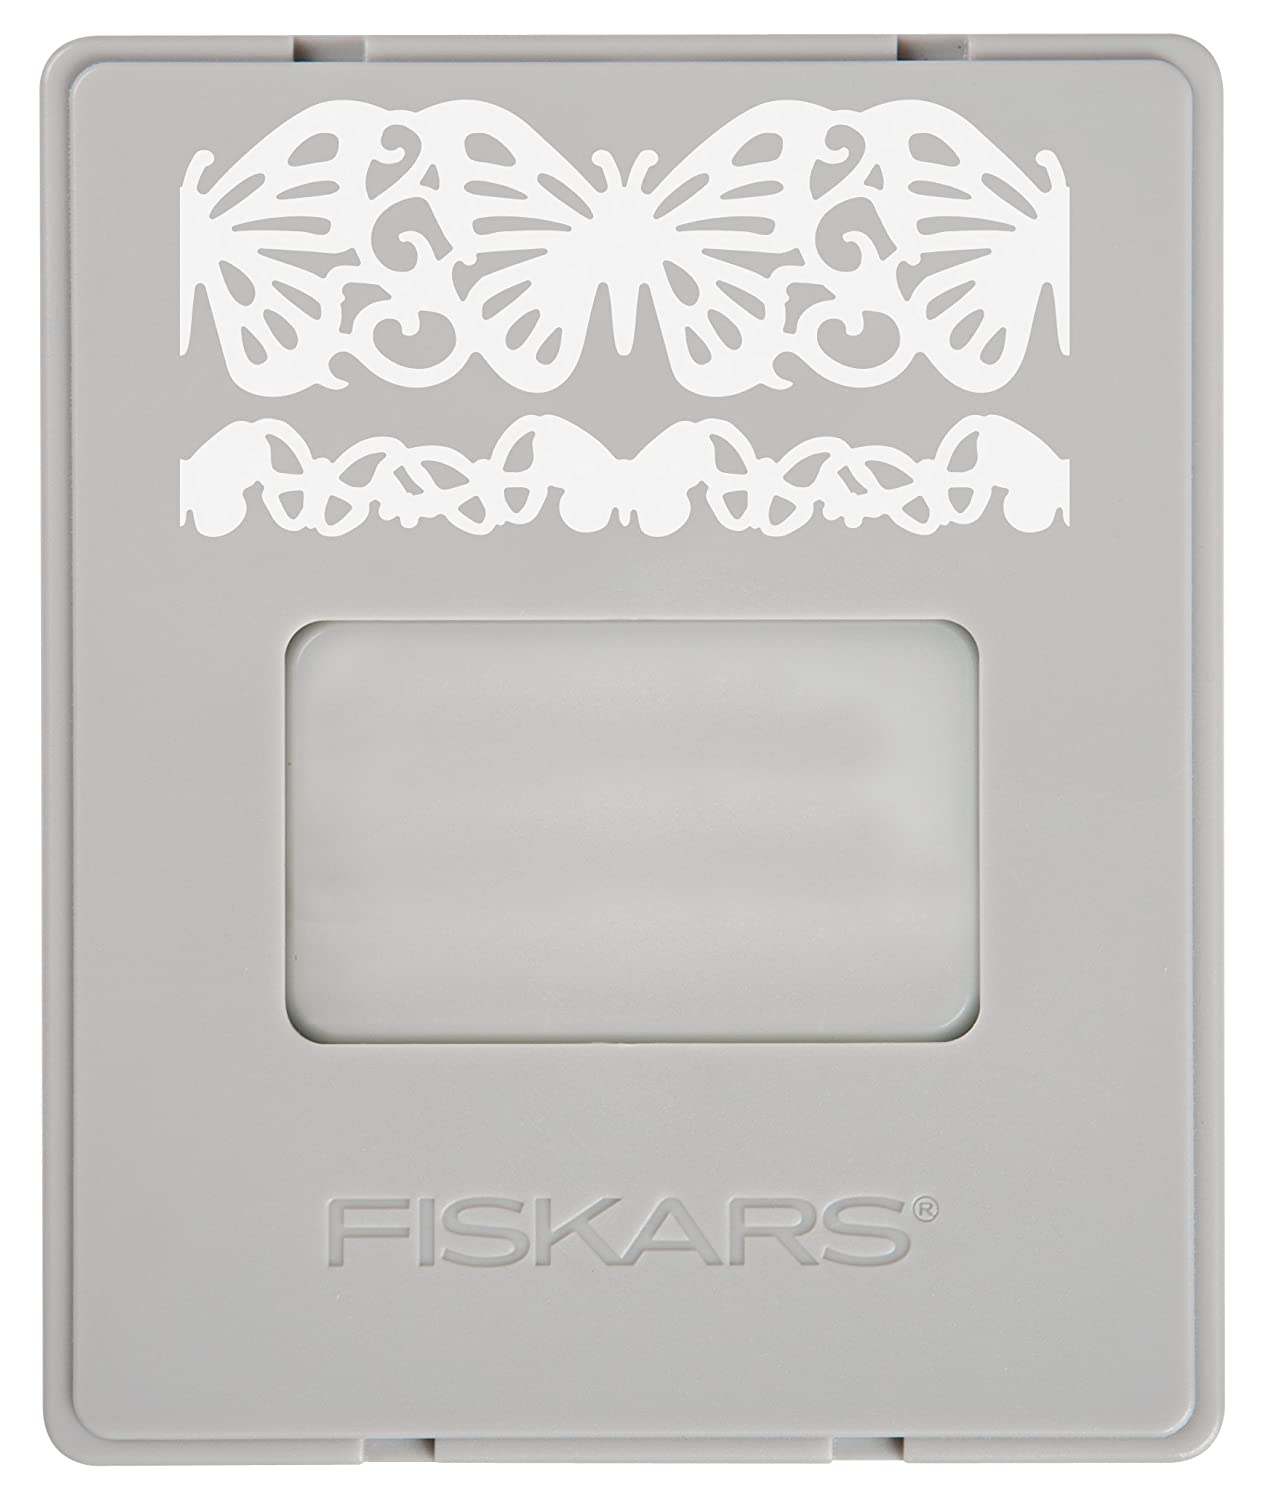 Fiskars AdvantEdge Butterfly Lace Border Punch Cartridge (101730-1001)